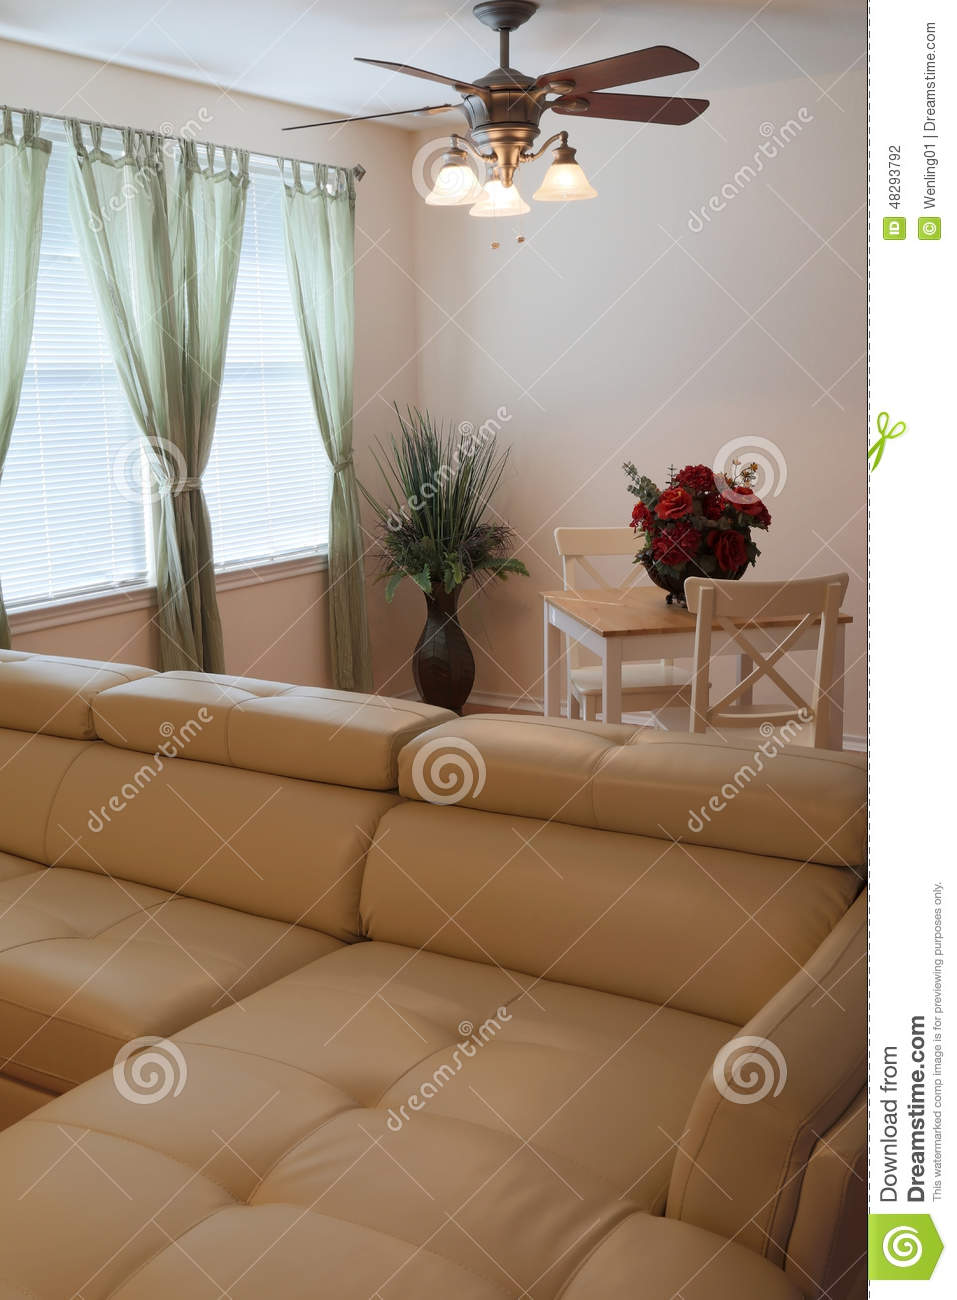 Nice modern living room interior stock photo image 48293792 - Nice interior pic ...